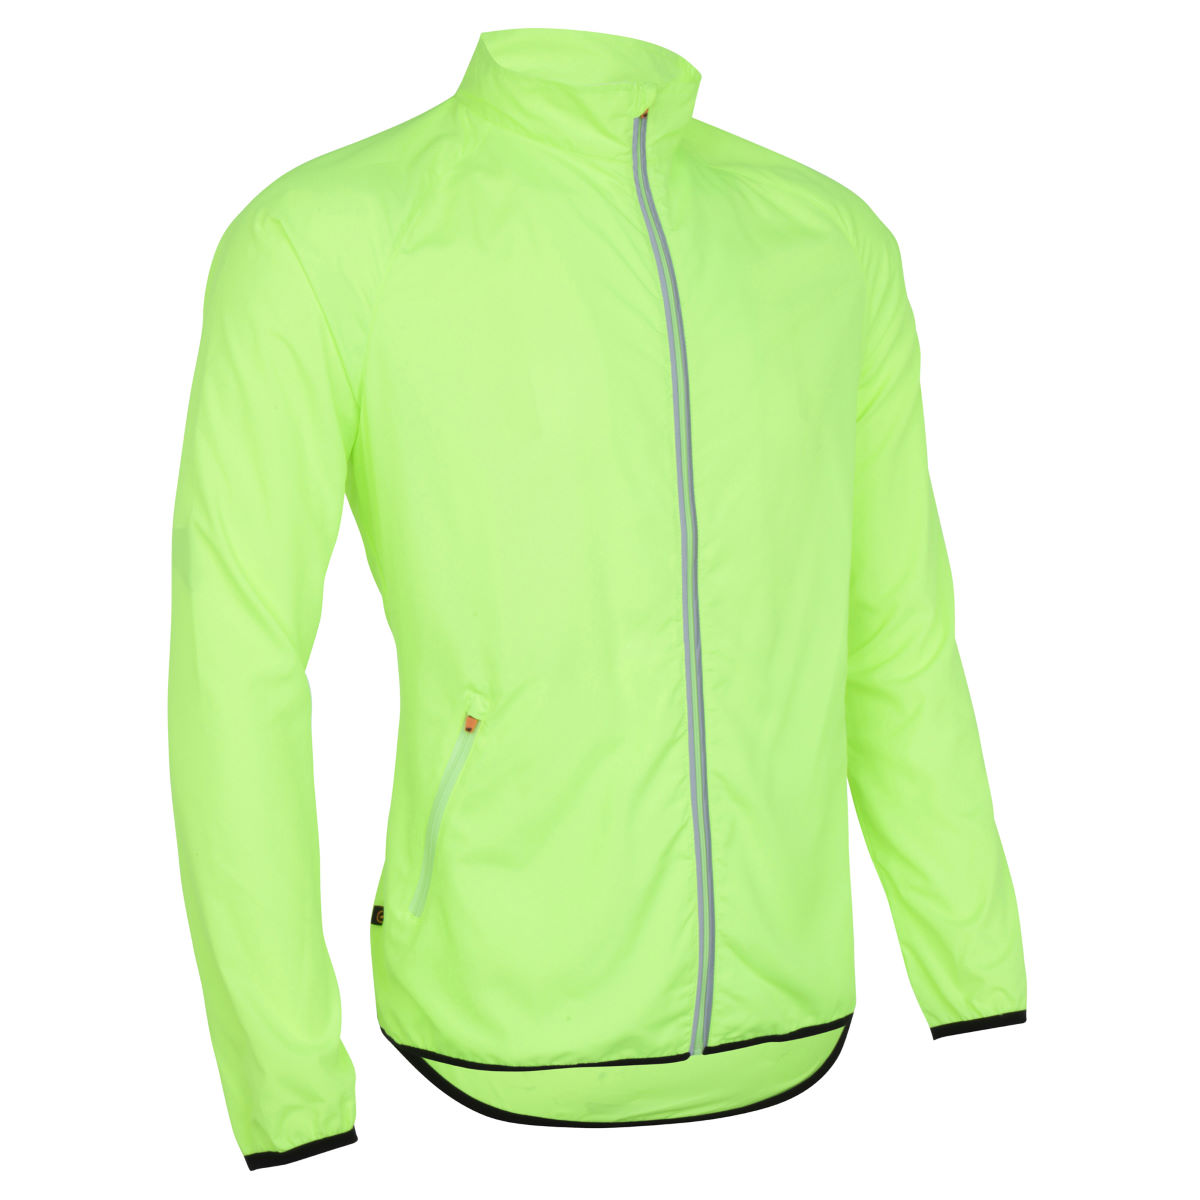 Veste Wiggle Essentials Run - S Jaune Vestes de running coupe-vent